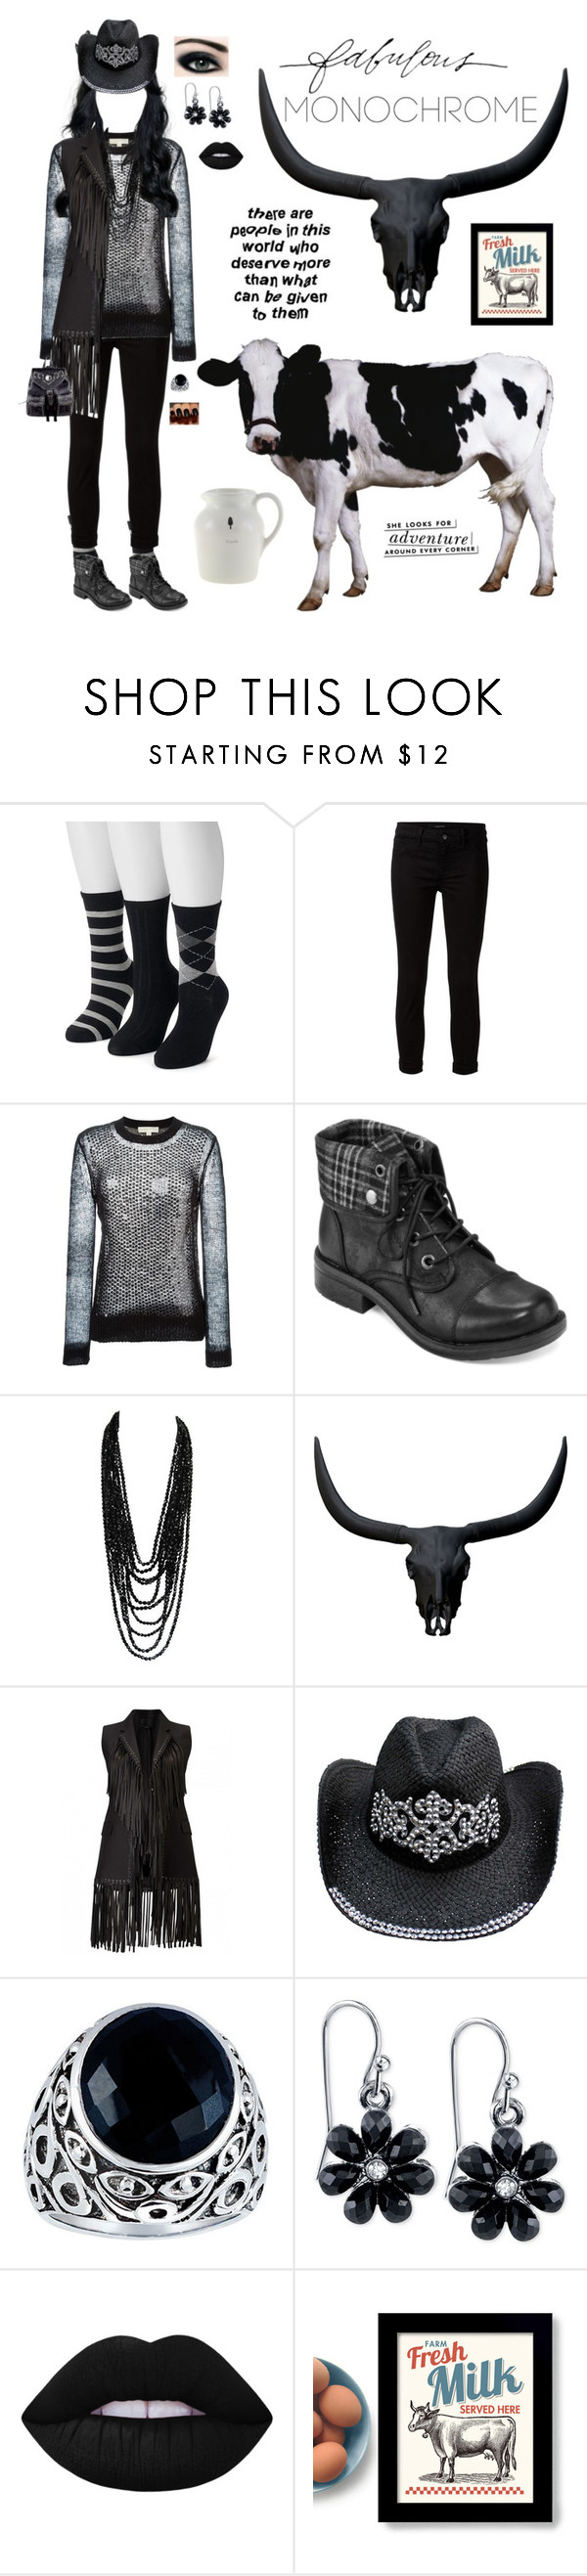 """""""Chillin' with the Cows"""" by pinky-dee ❤ liked on Polyvore featuring SONOMA Goods for Life, J Brand, MICHAEL Michael Kors, Arizona, Parvez Taj, Stella & Dot, 2028, Lime Crime, Kate Spade and Amara"""